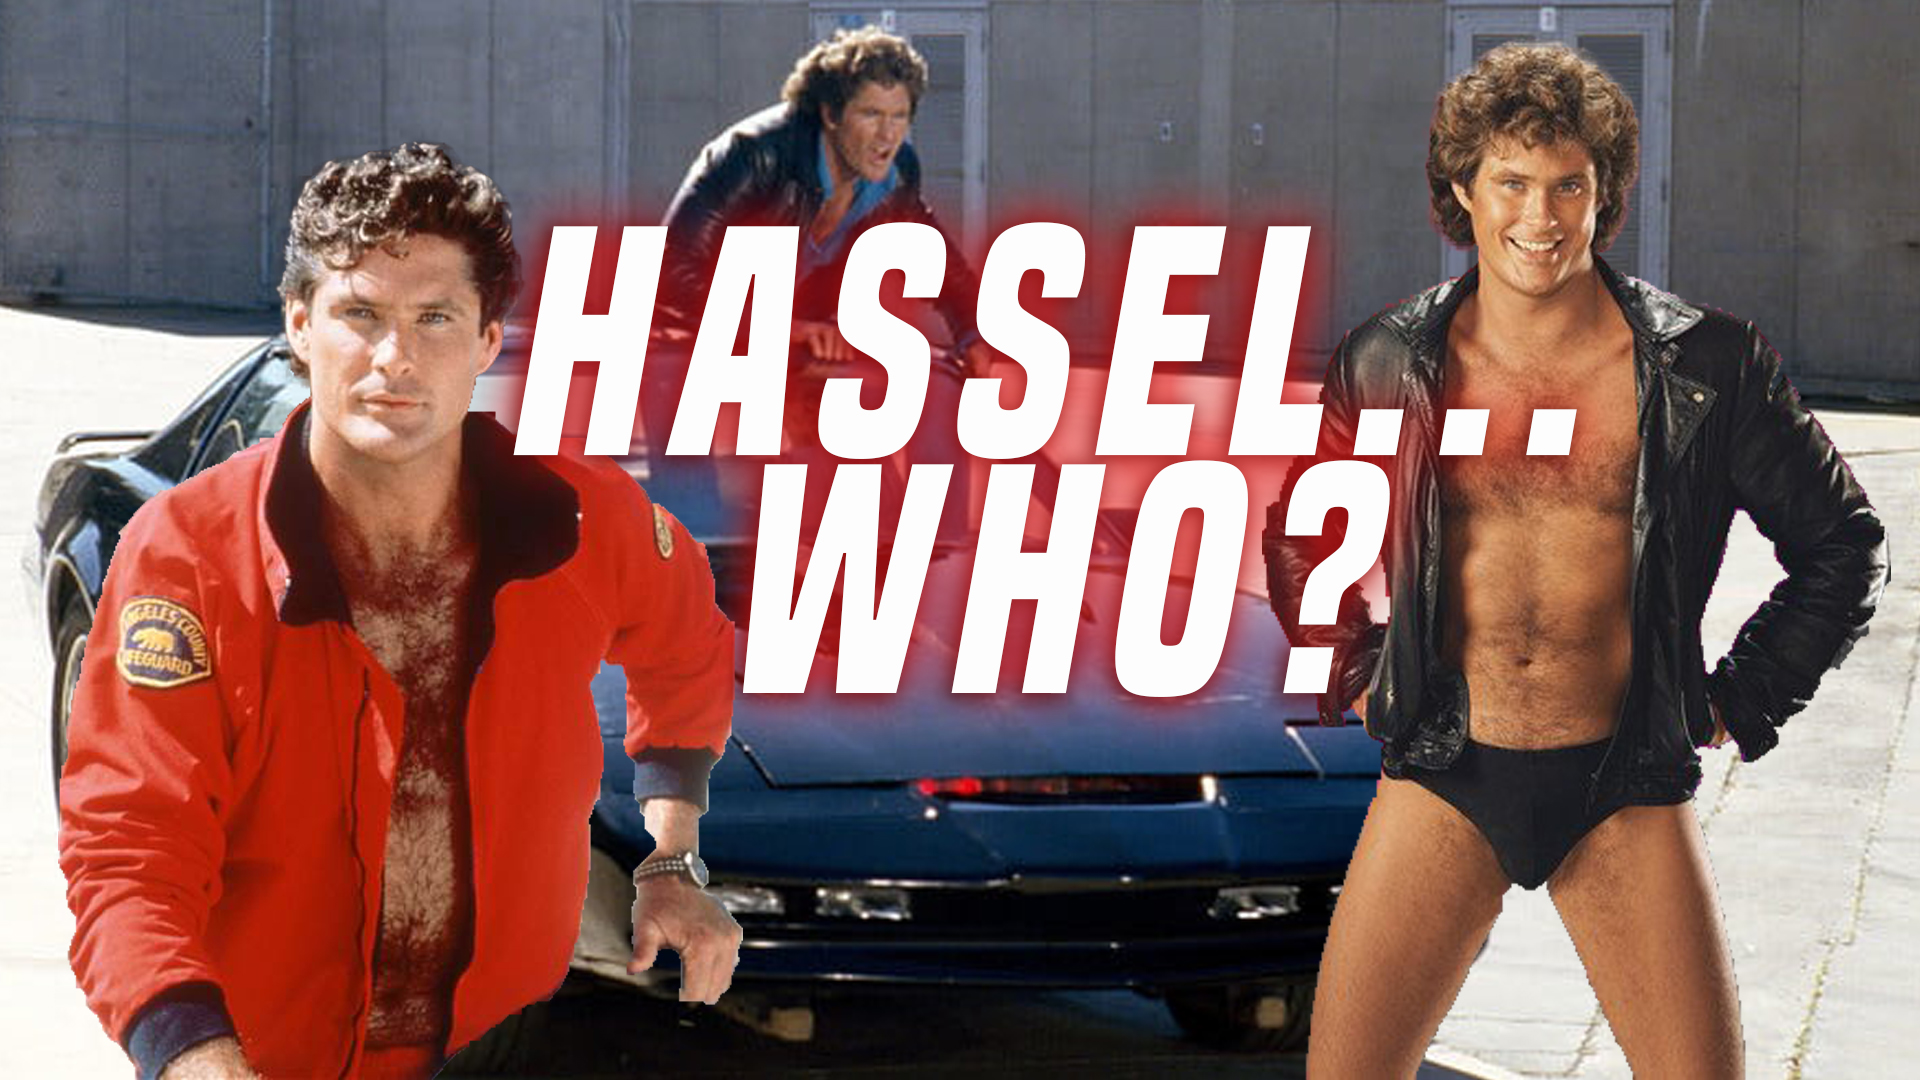 HASSEL… WHO?